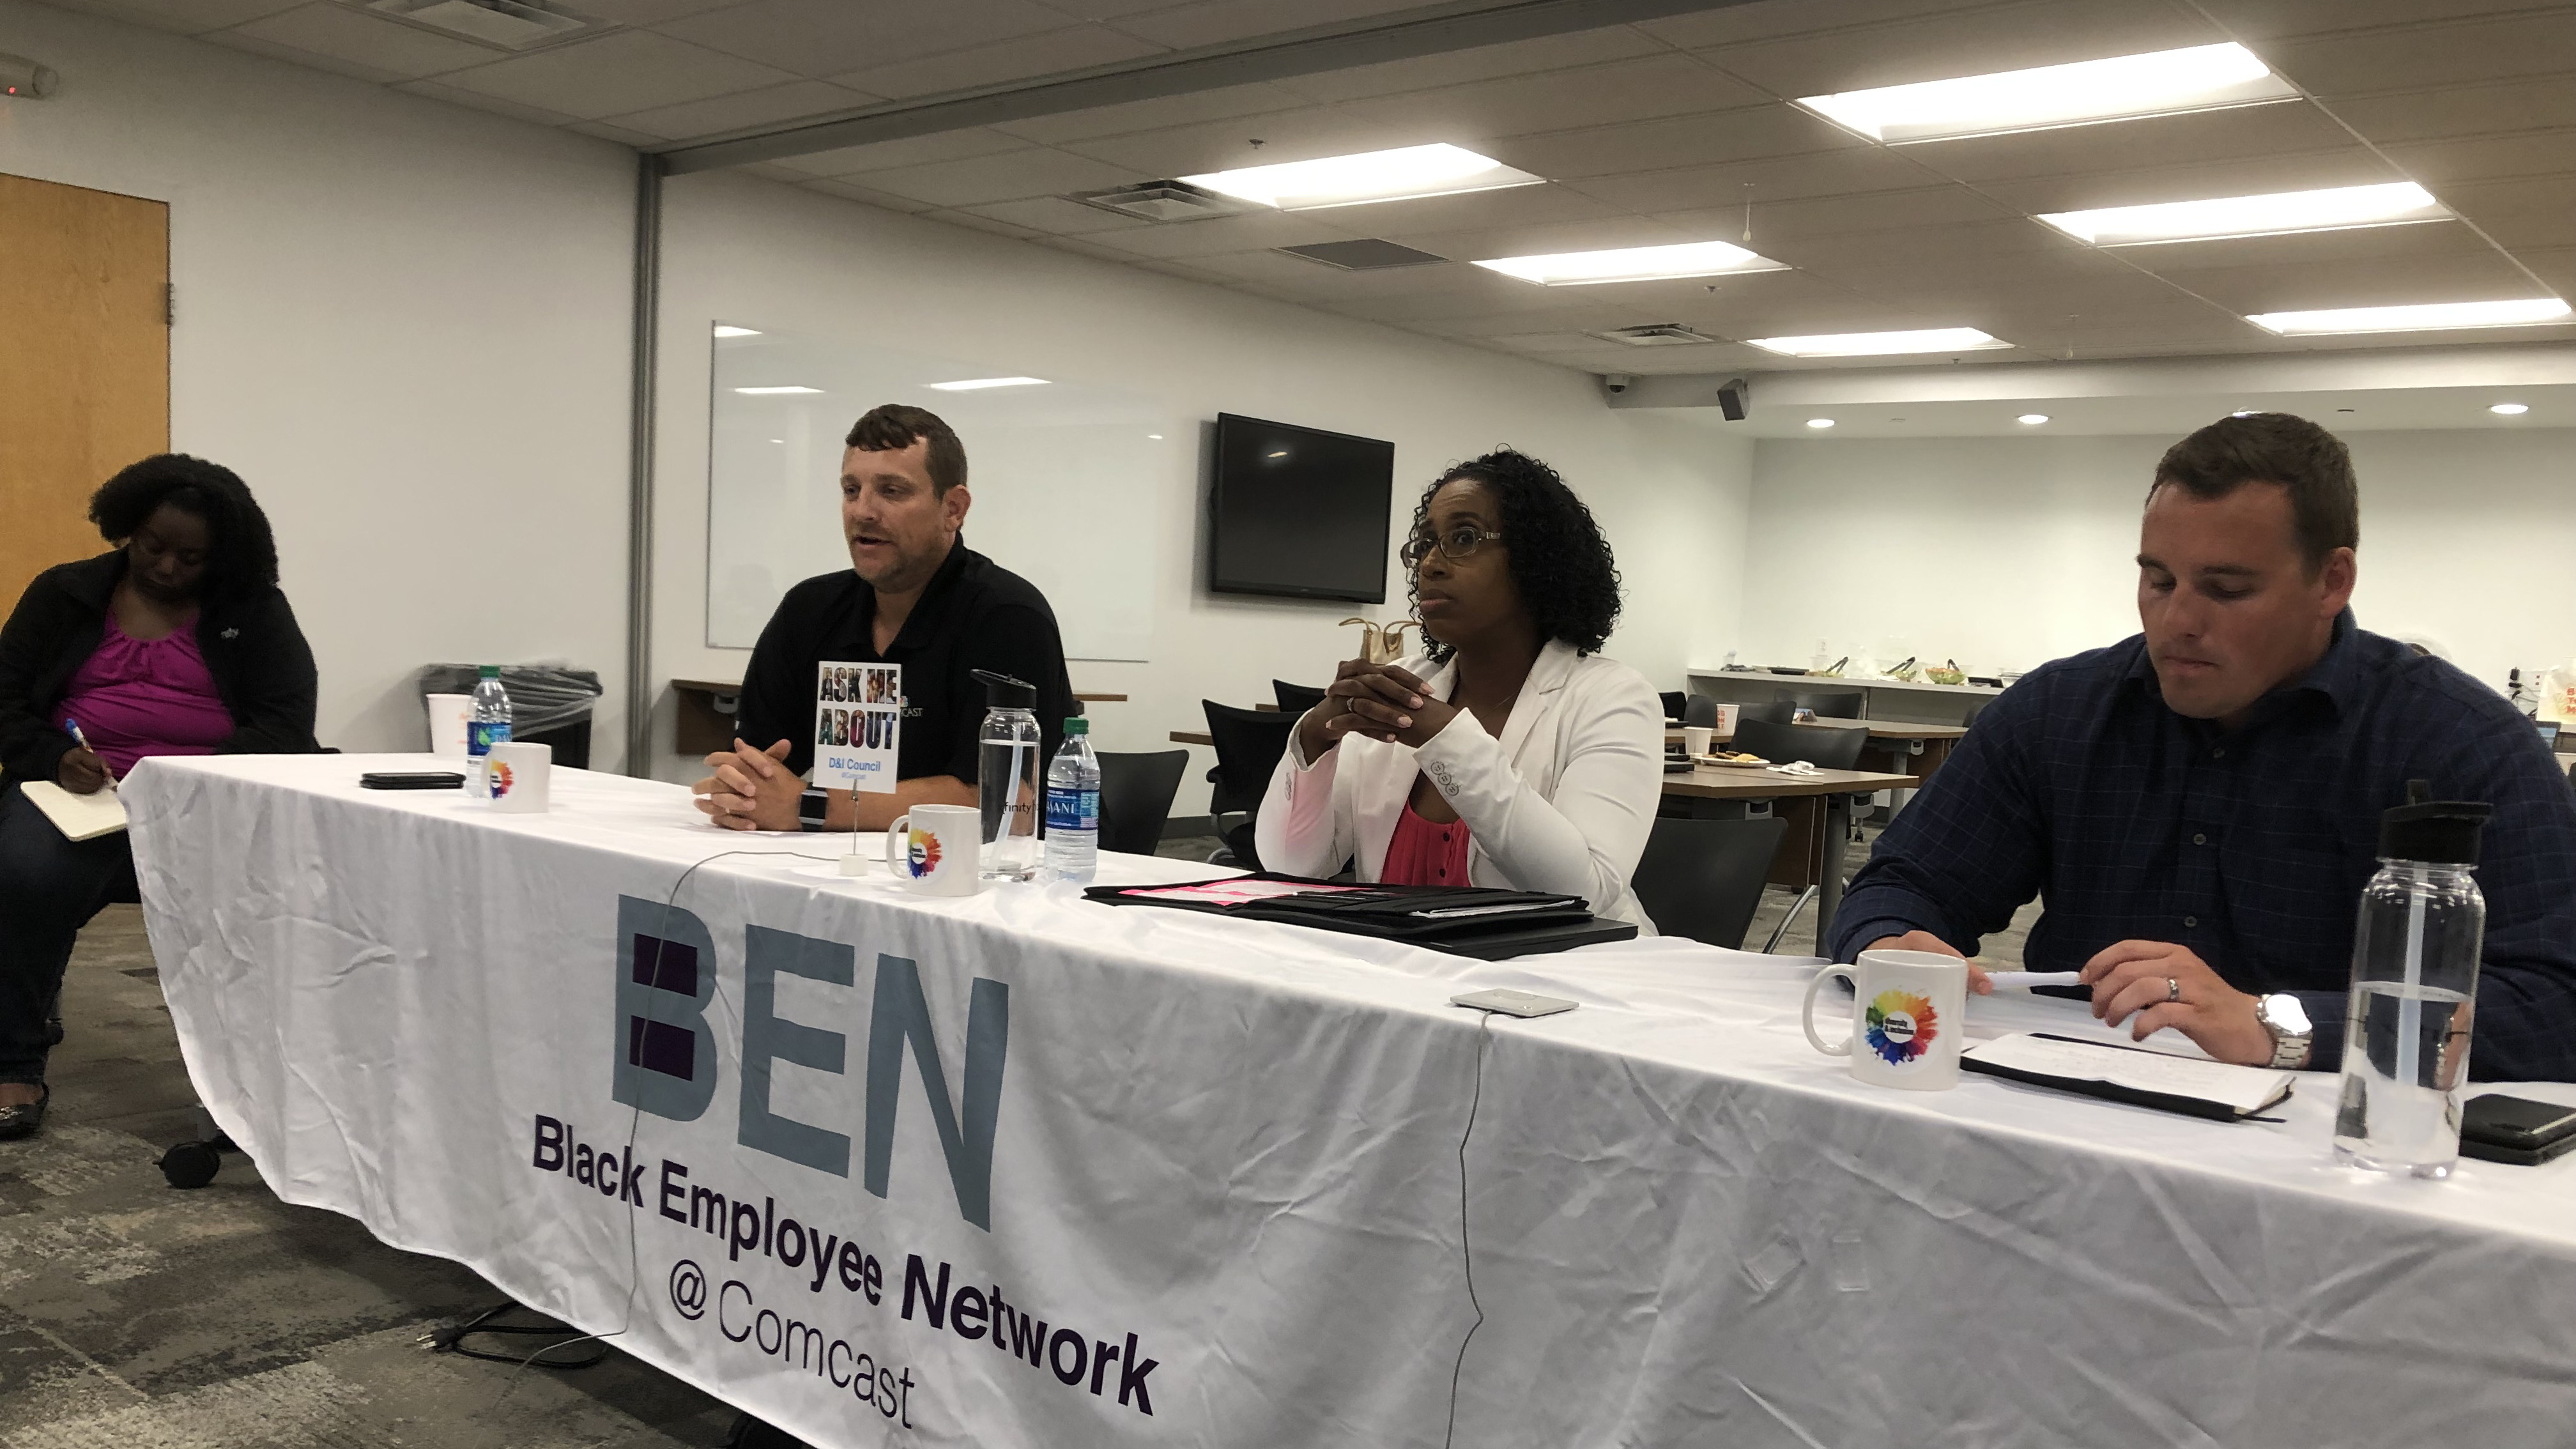 Members of the Black Employee Network sit together at a table.